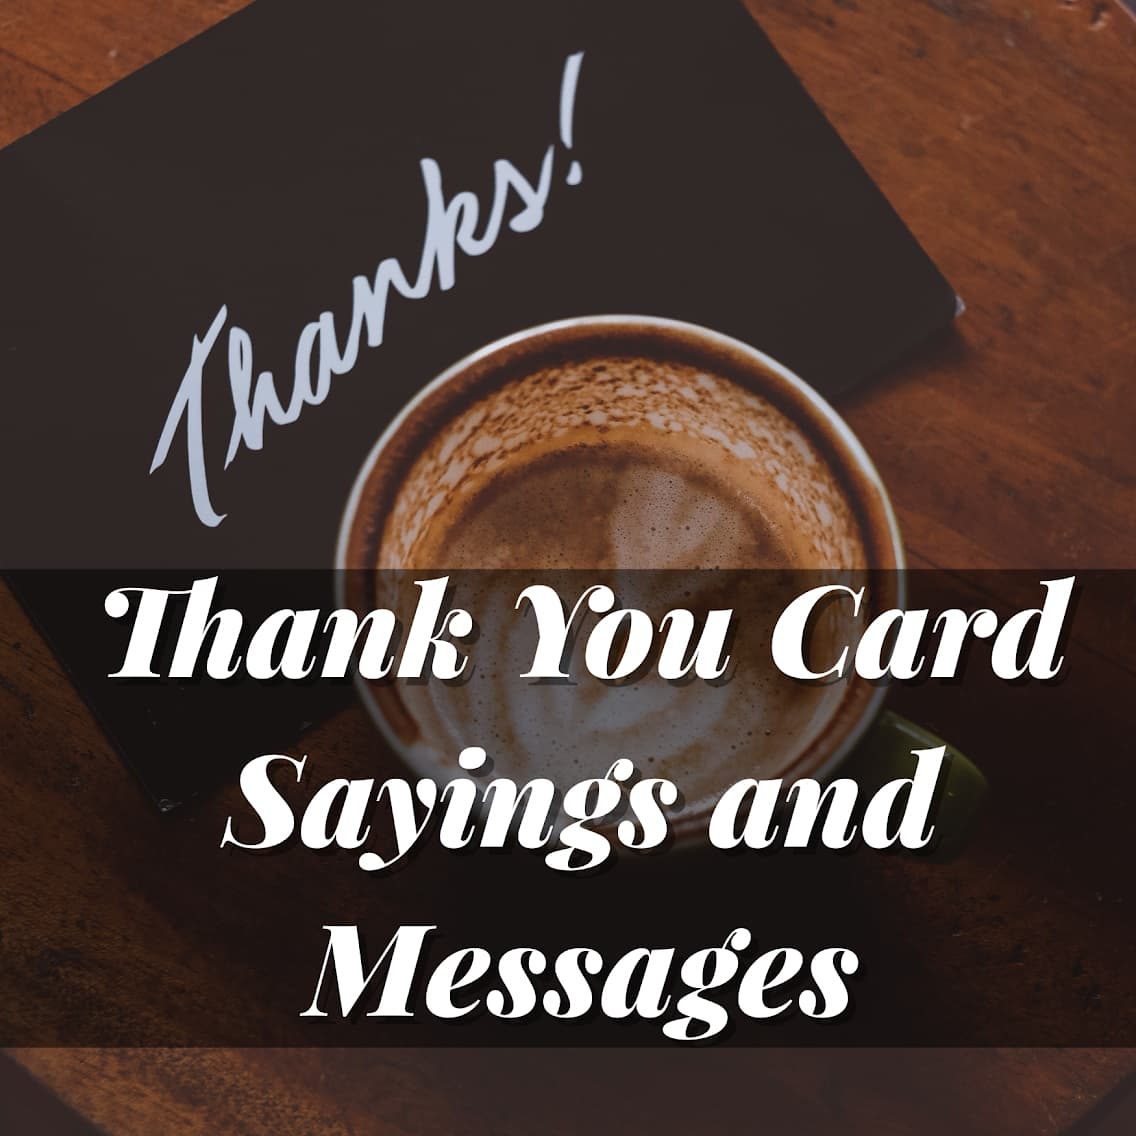 Thank You Card Sayings And Messages Someone Sent You A